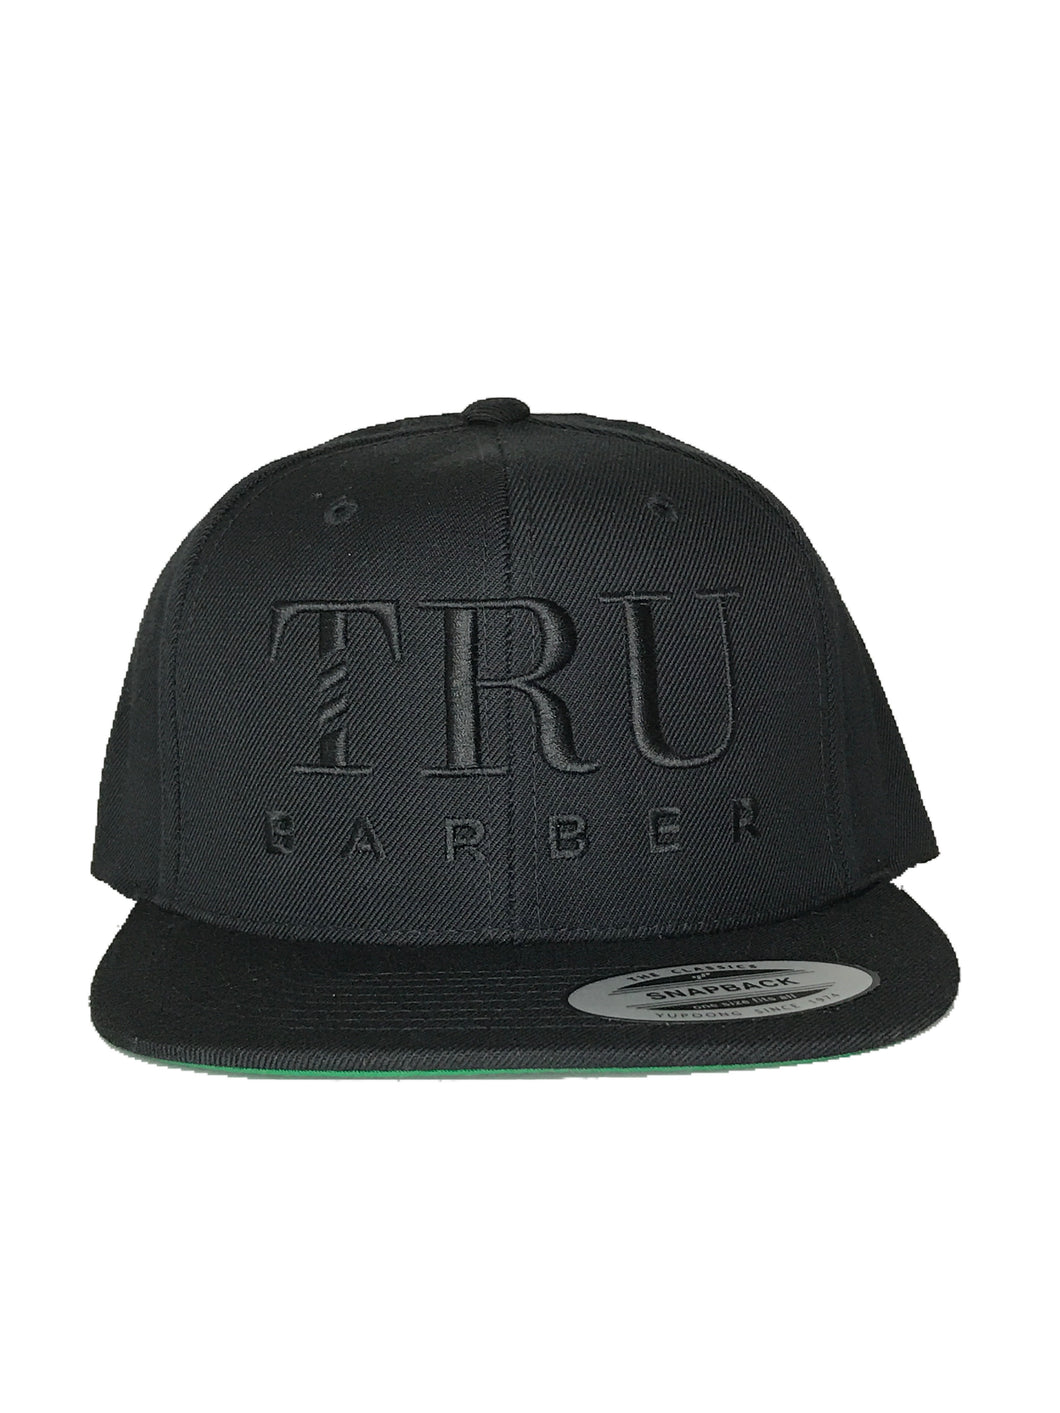 TruBarber Snapback-All Black